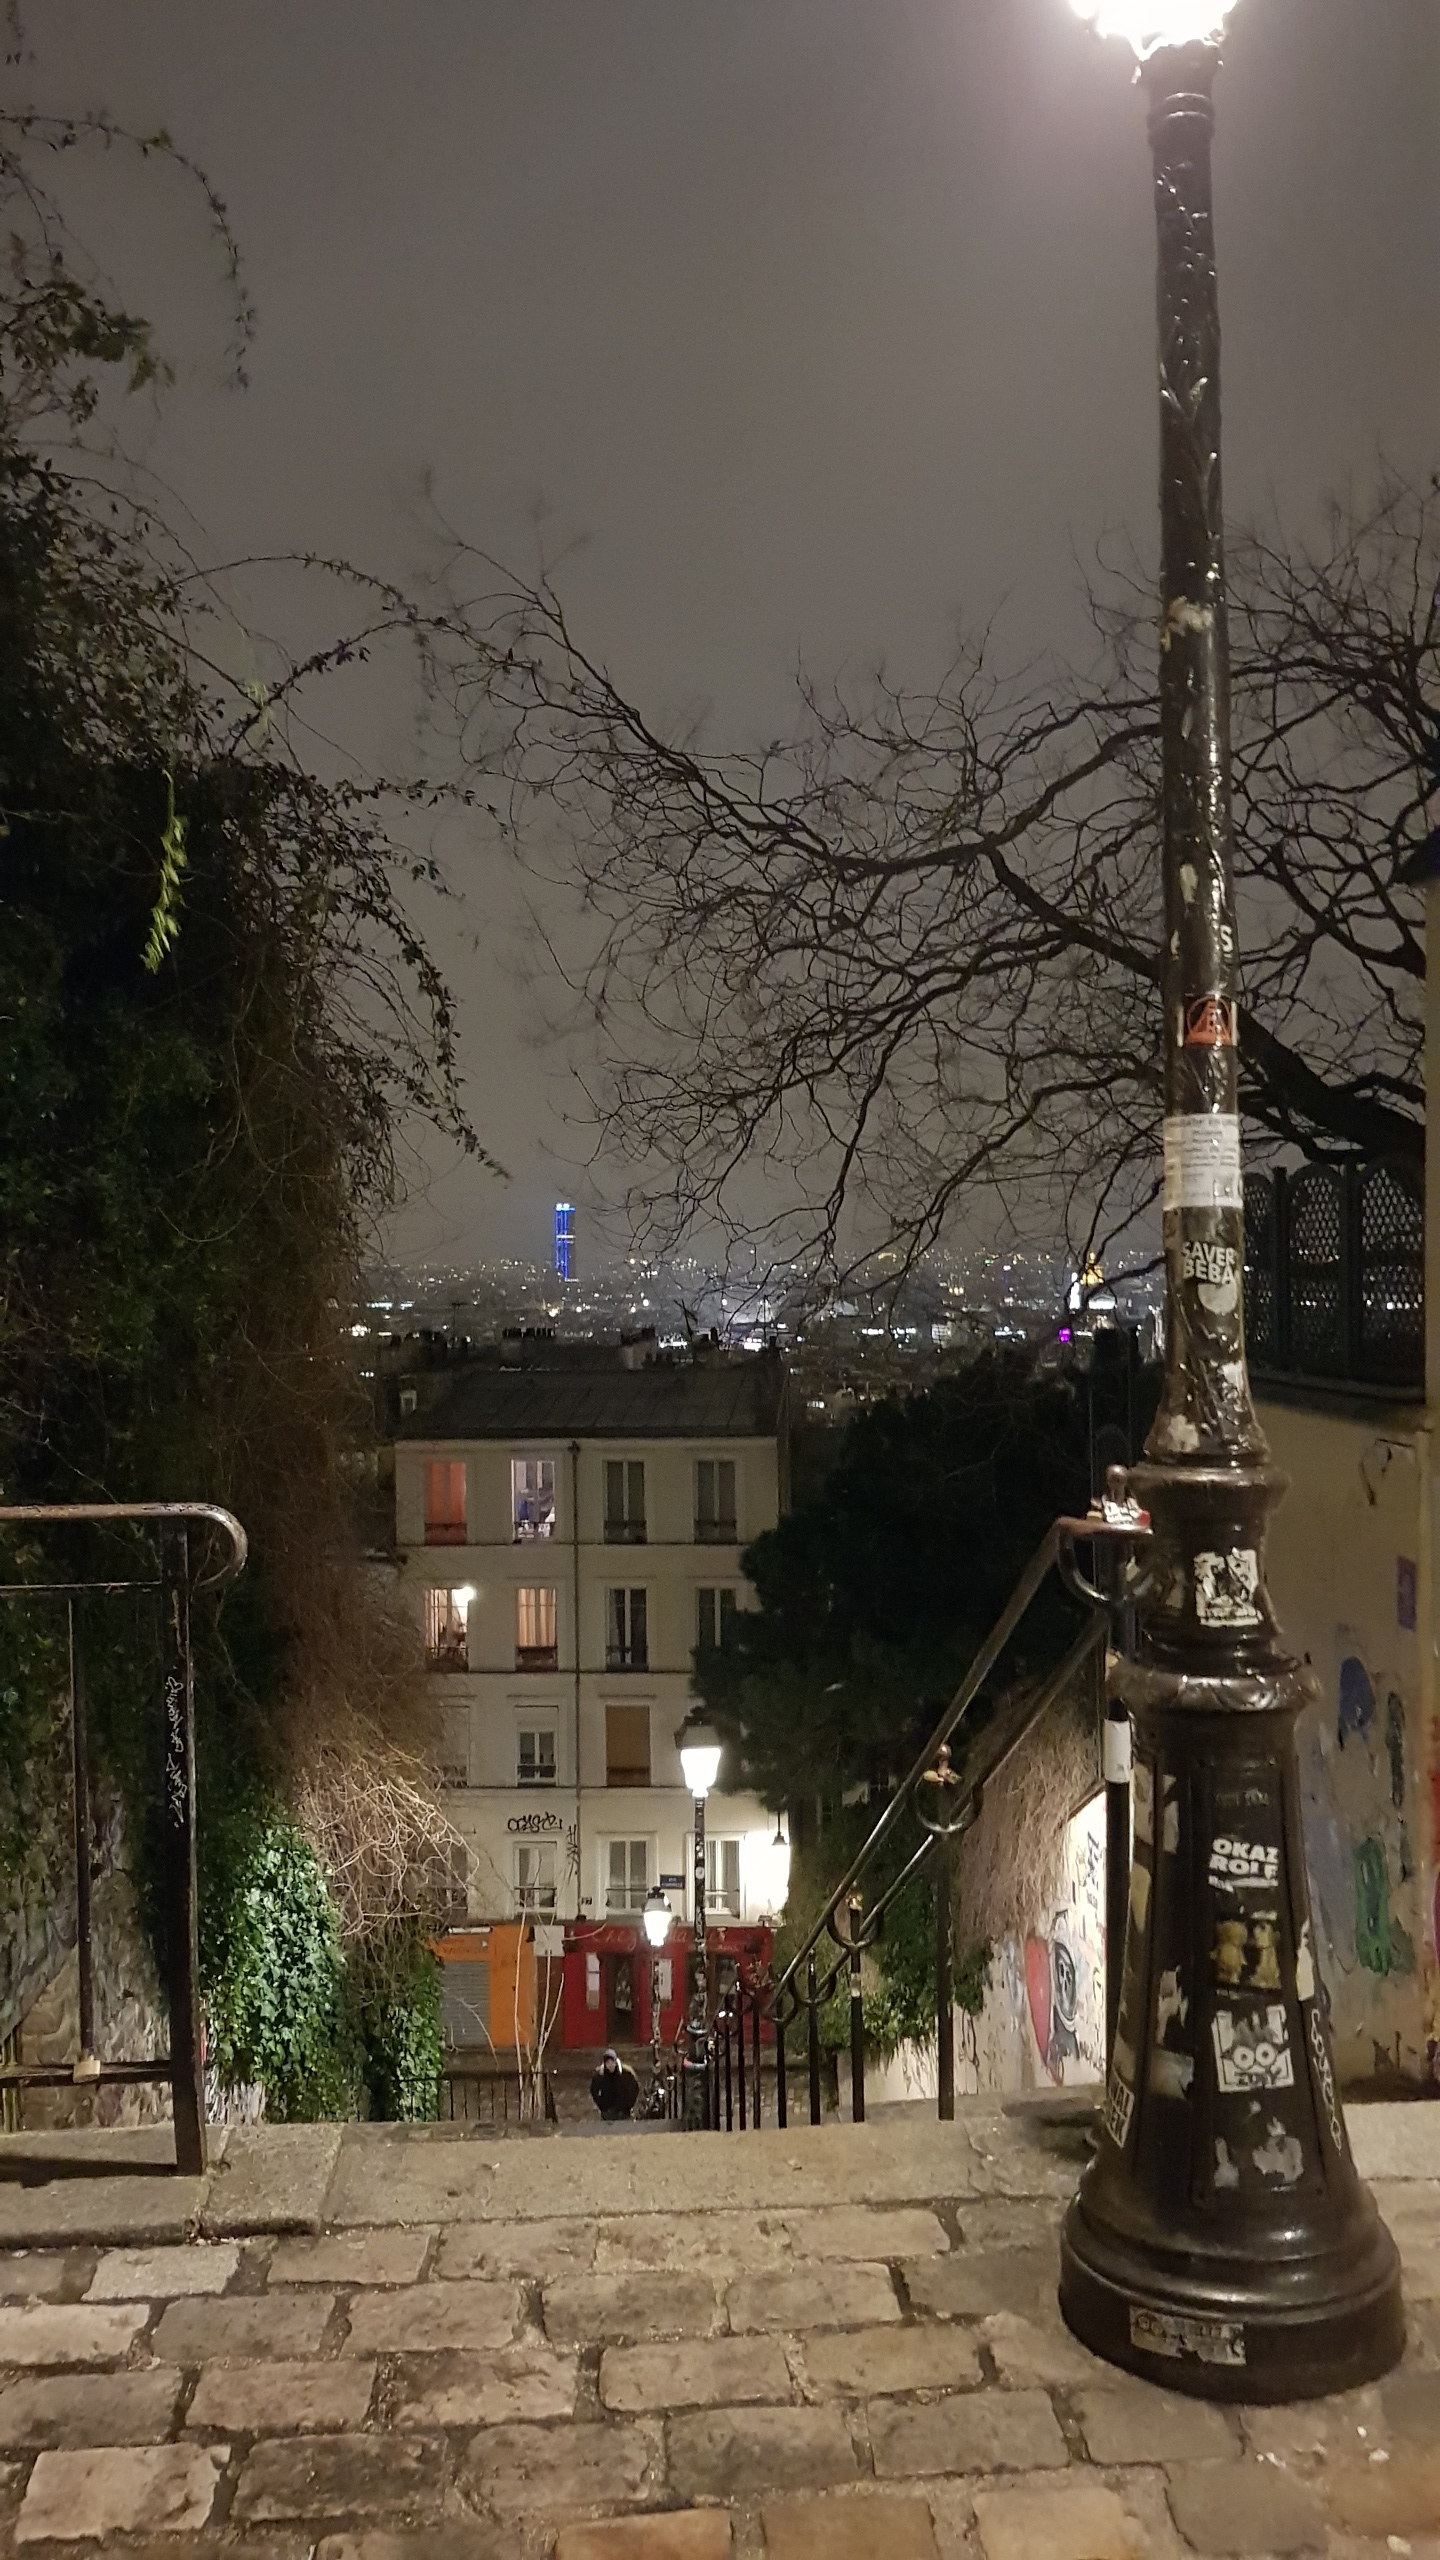 Montmarte was a beautiful neighbourhood, if a bit of a climb. It was a lot more residential and quaint compared to where we were staying in Bastille, and the view of the rest of Paris at night was stunning. I'd love to one day see it in the daylight.